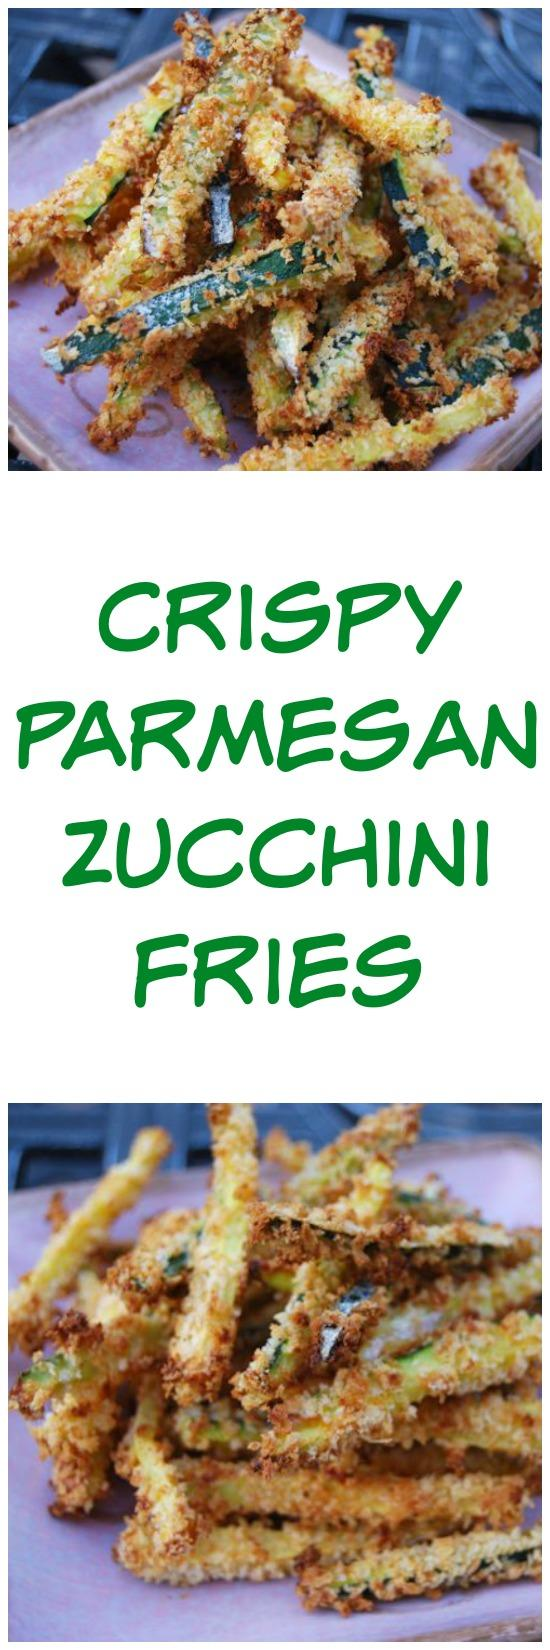 These Crispy Parmesan Zucchini Fries make the perfect dinner side dish and taste great when served with a side of marinara sauce for dipping!